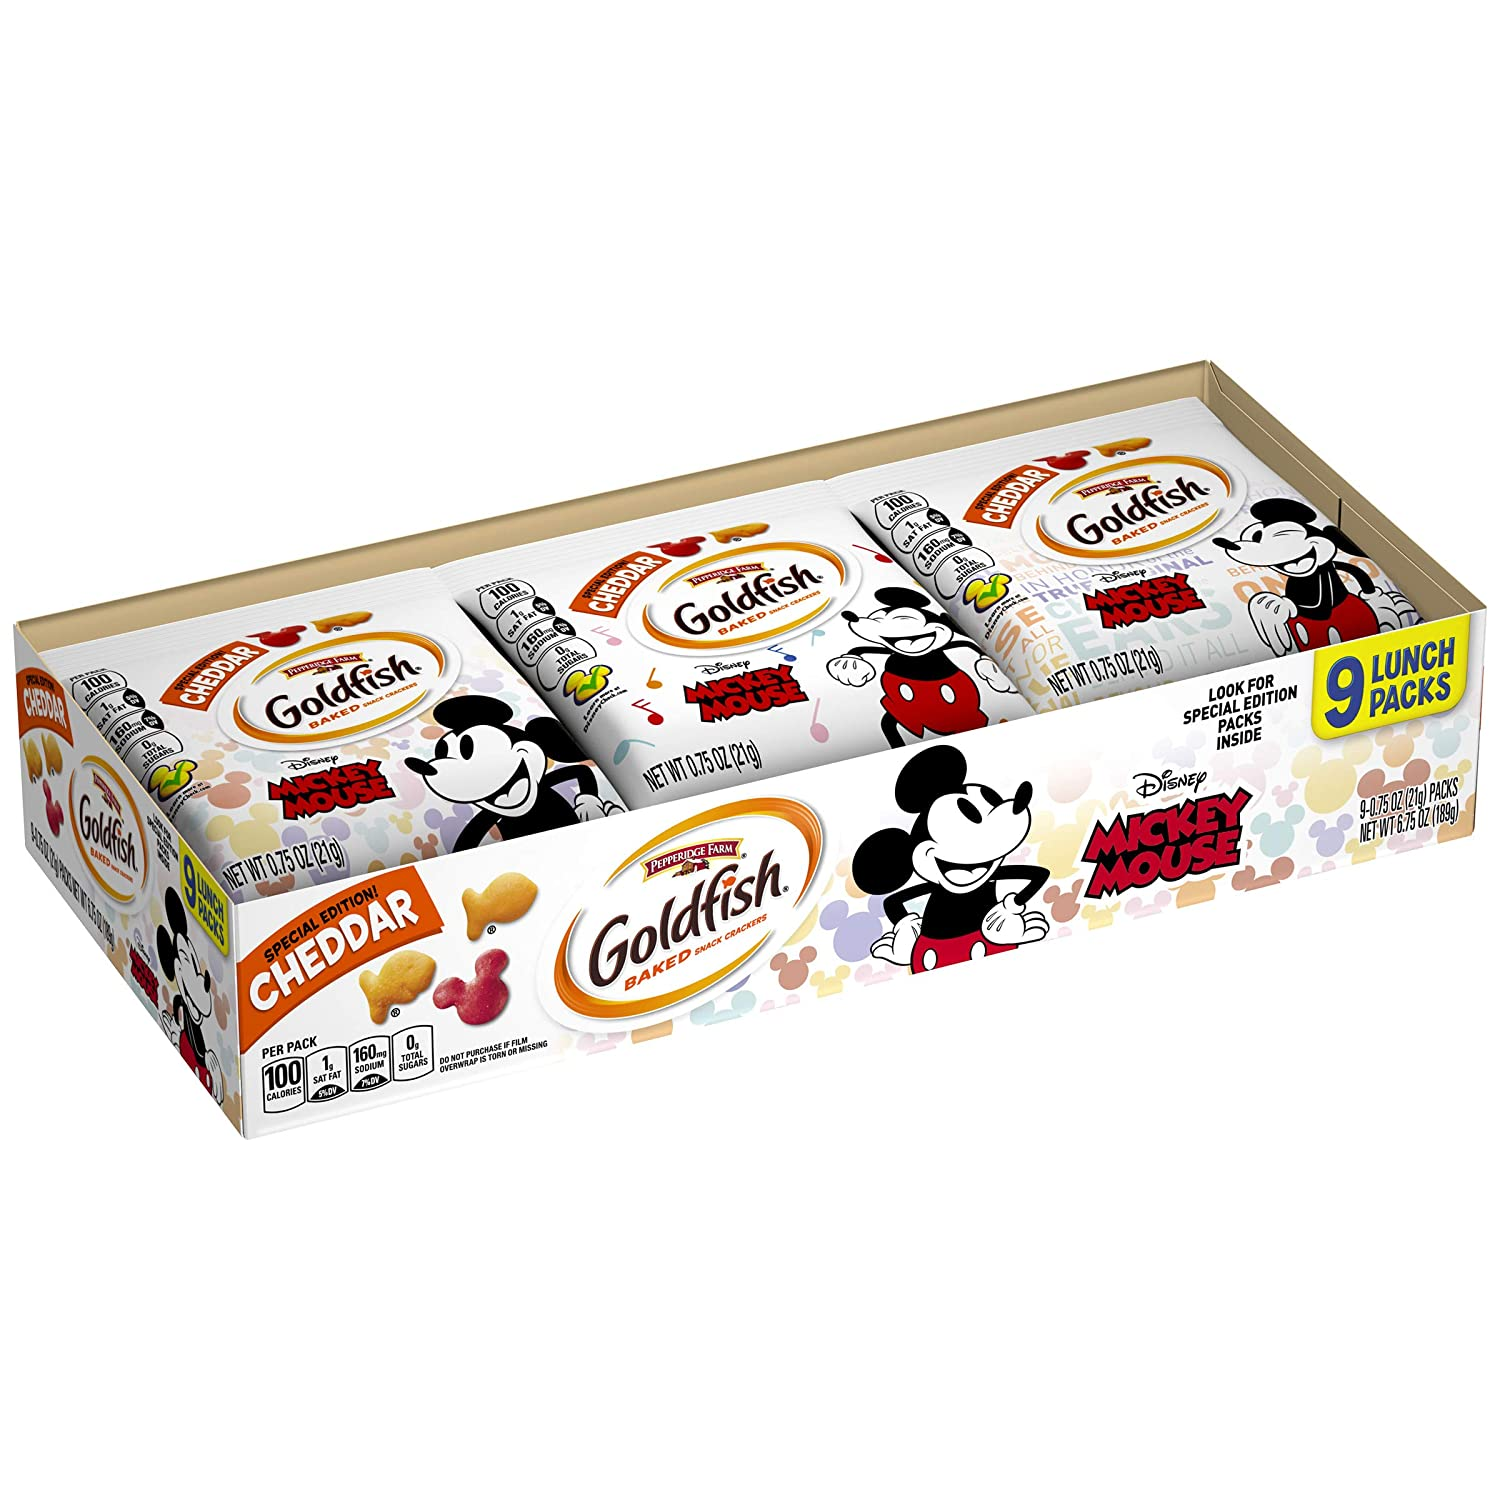 Pepperidge Farm Goldfish Special Edition Crackers with Disney's Mickey Mouse,9-count Tray